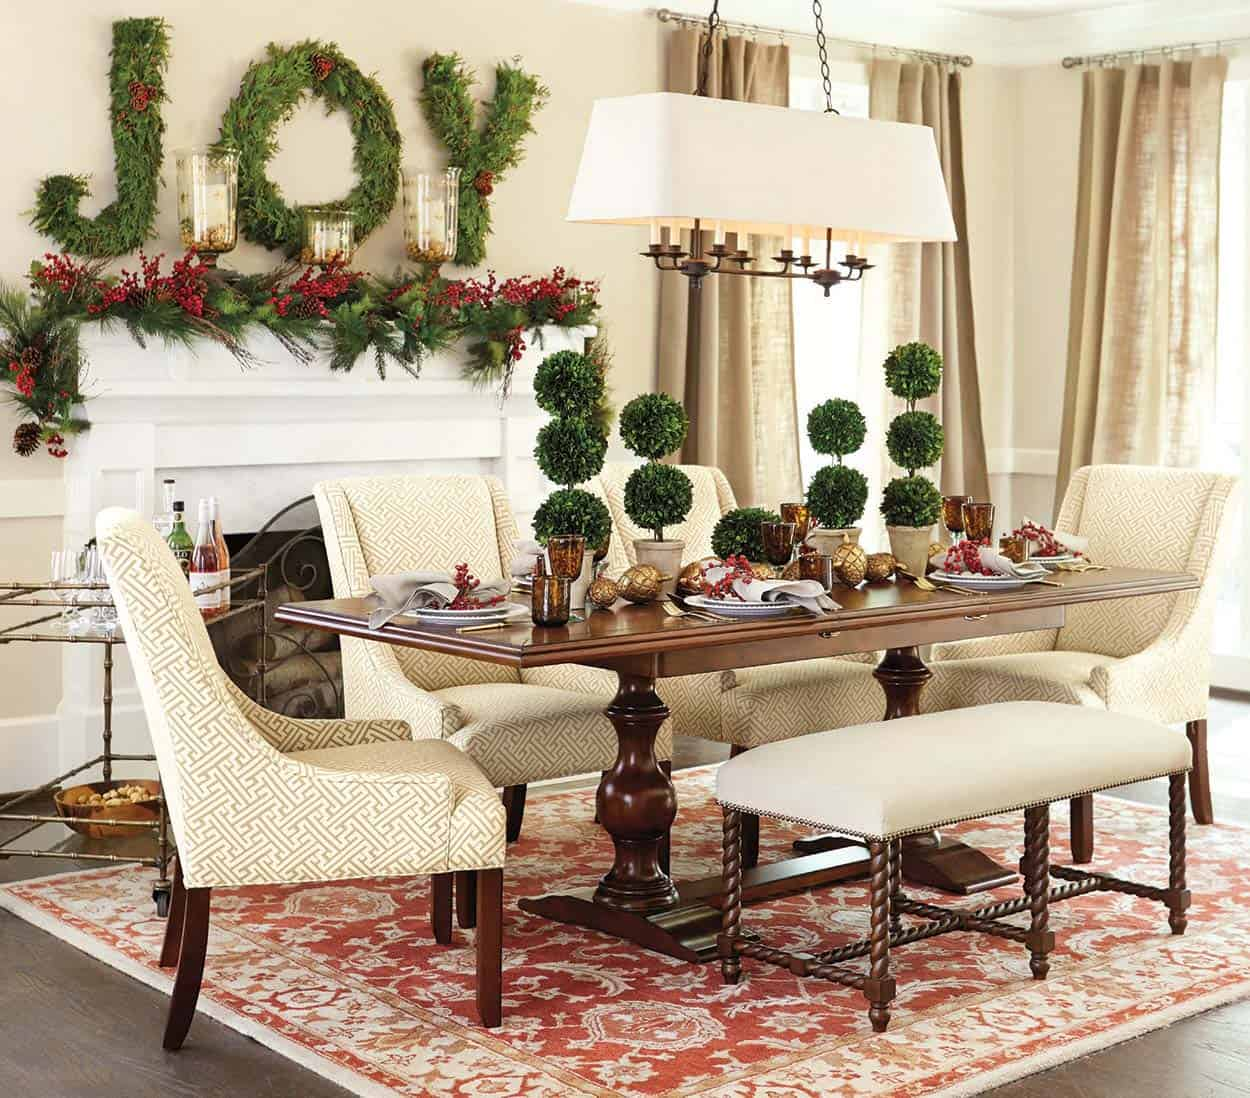 Rustic Home Decorating Ideas: 40+ Fabulous Rustic-Country Christmas Decorating Ideas